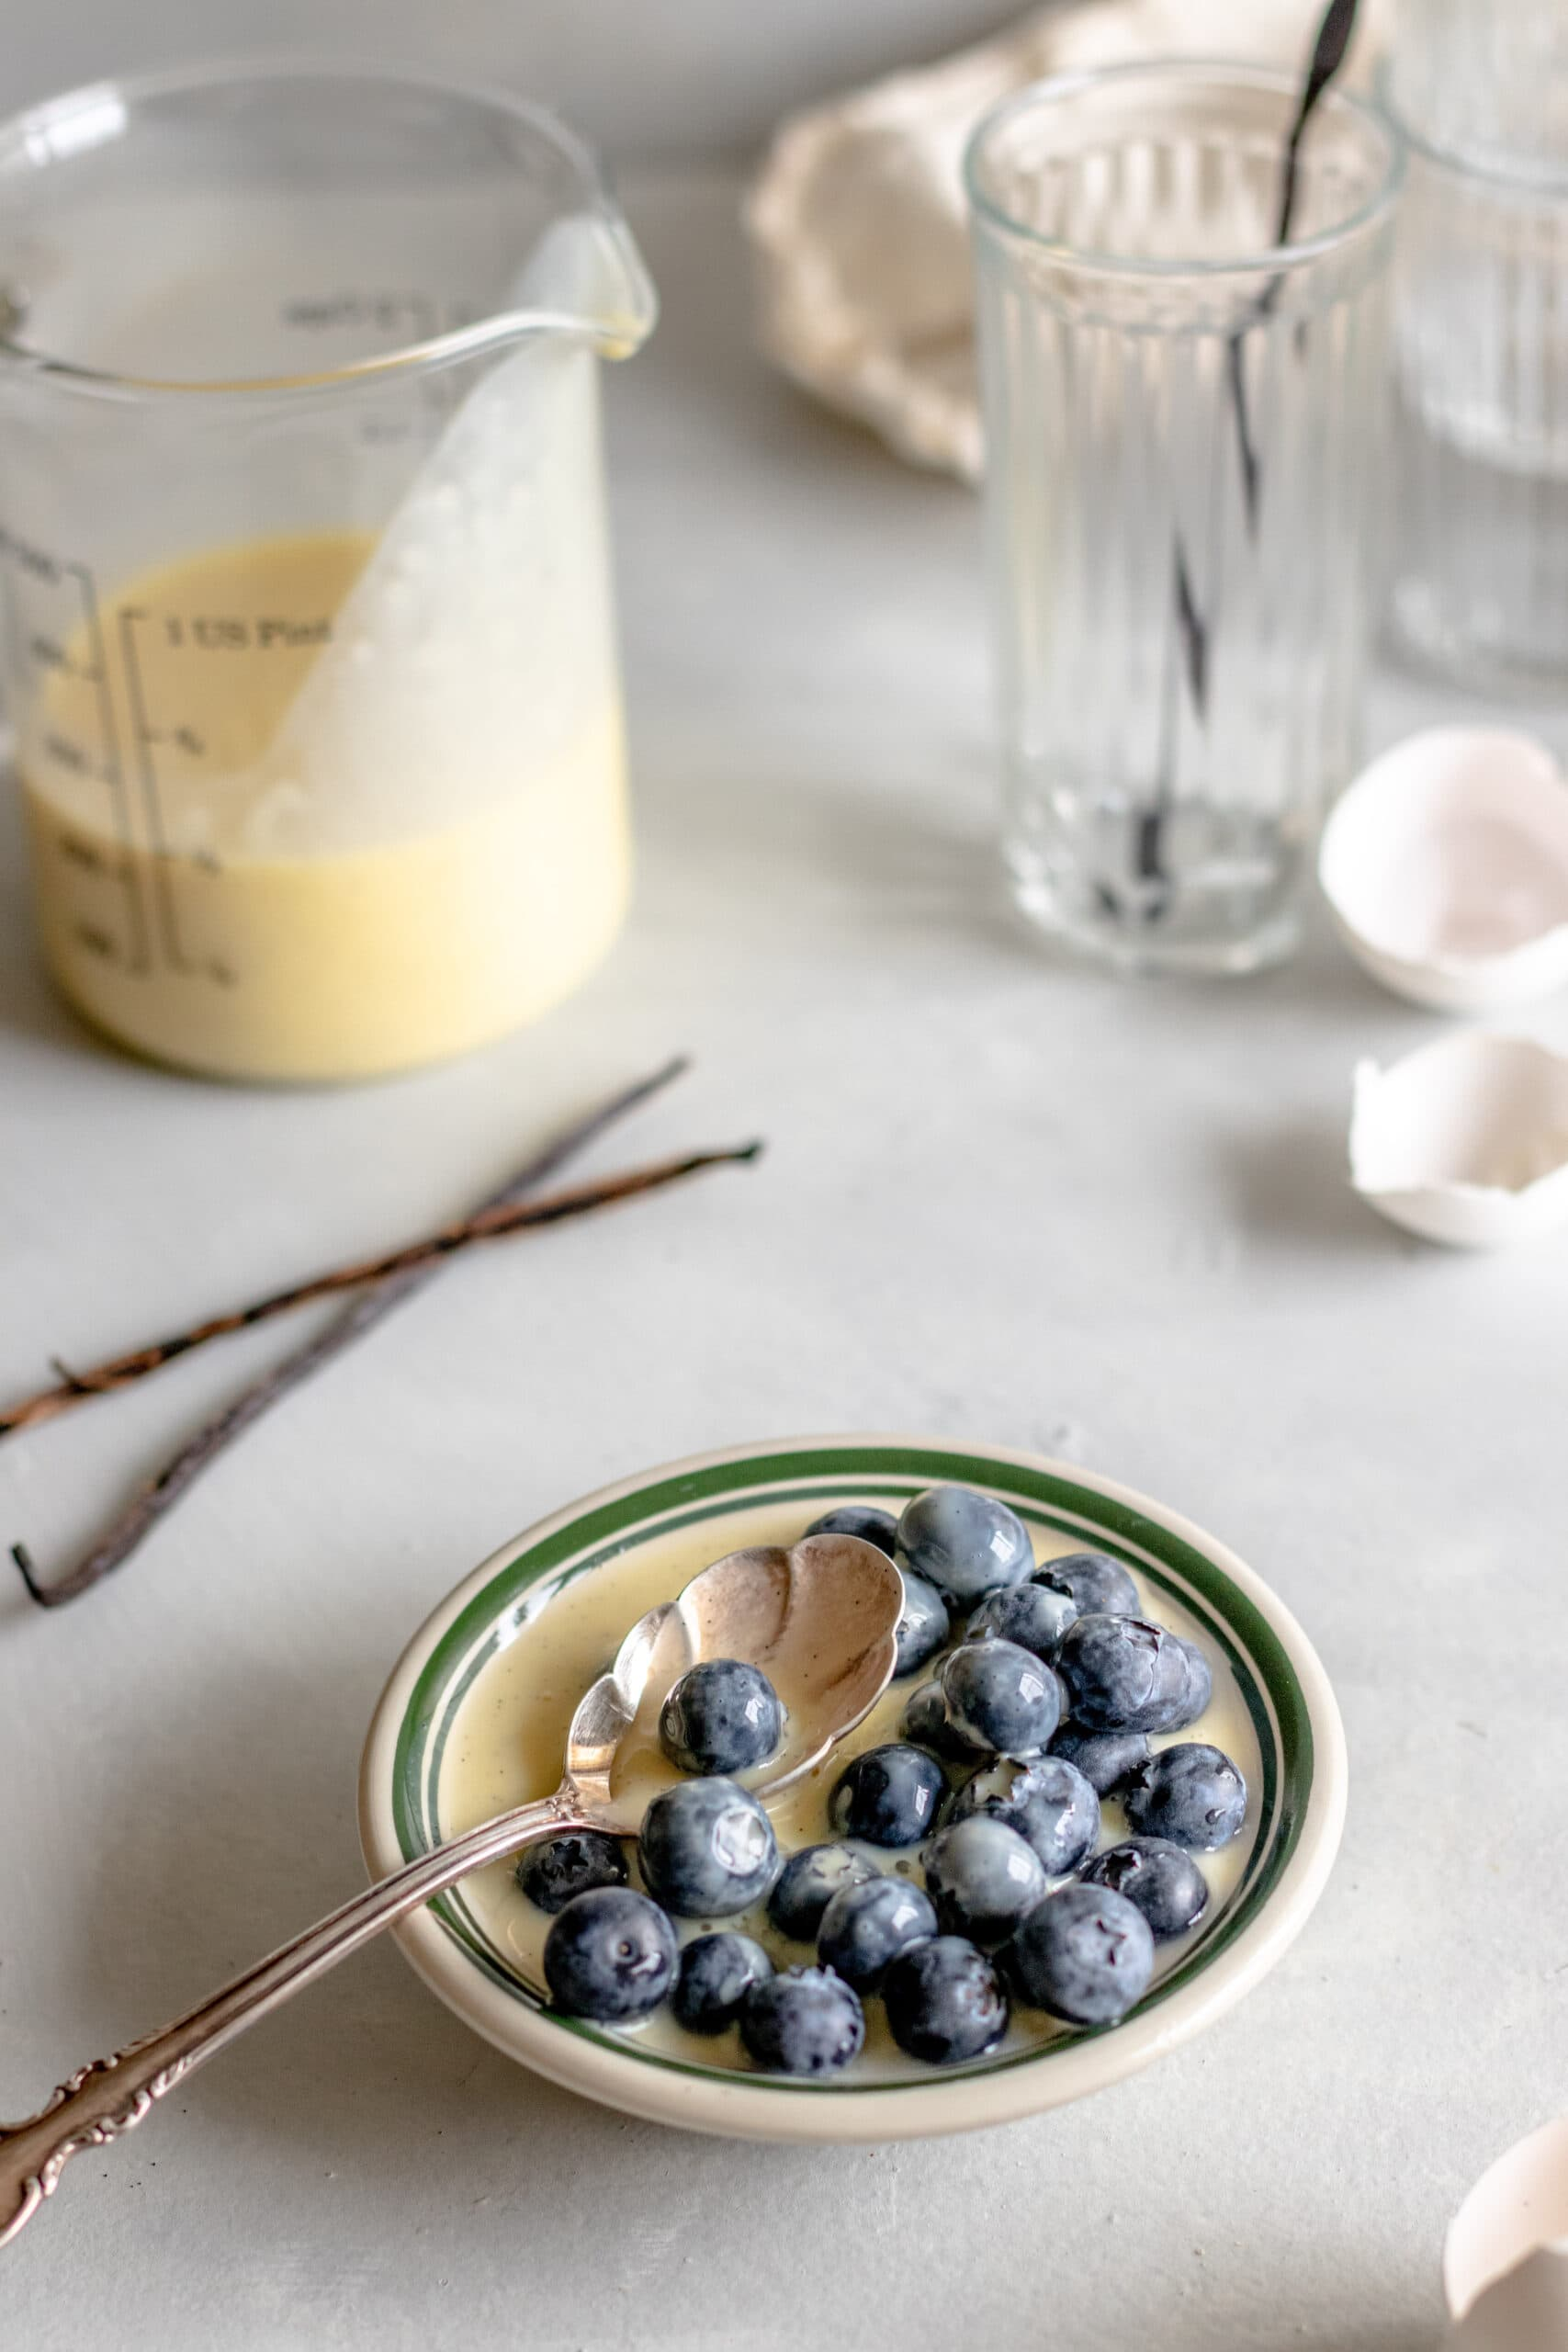 Image of vanilla custard sauce in a bowl with blueberries